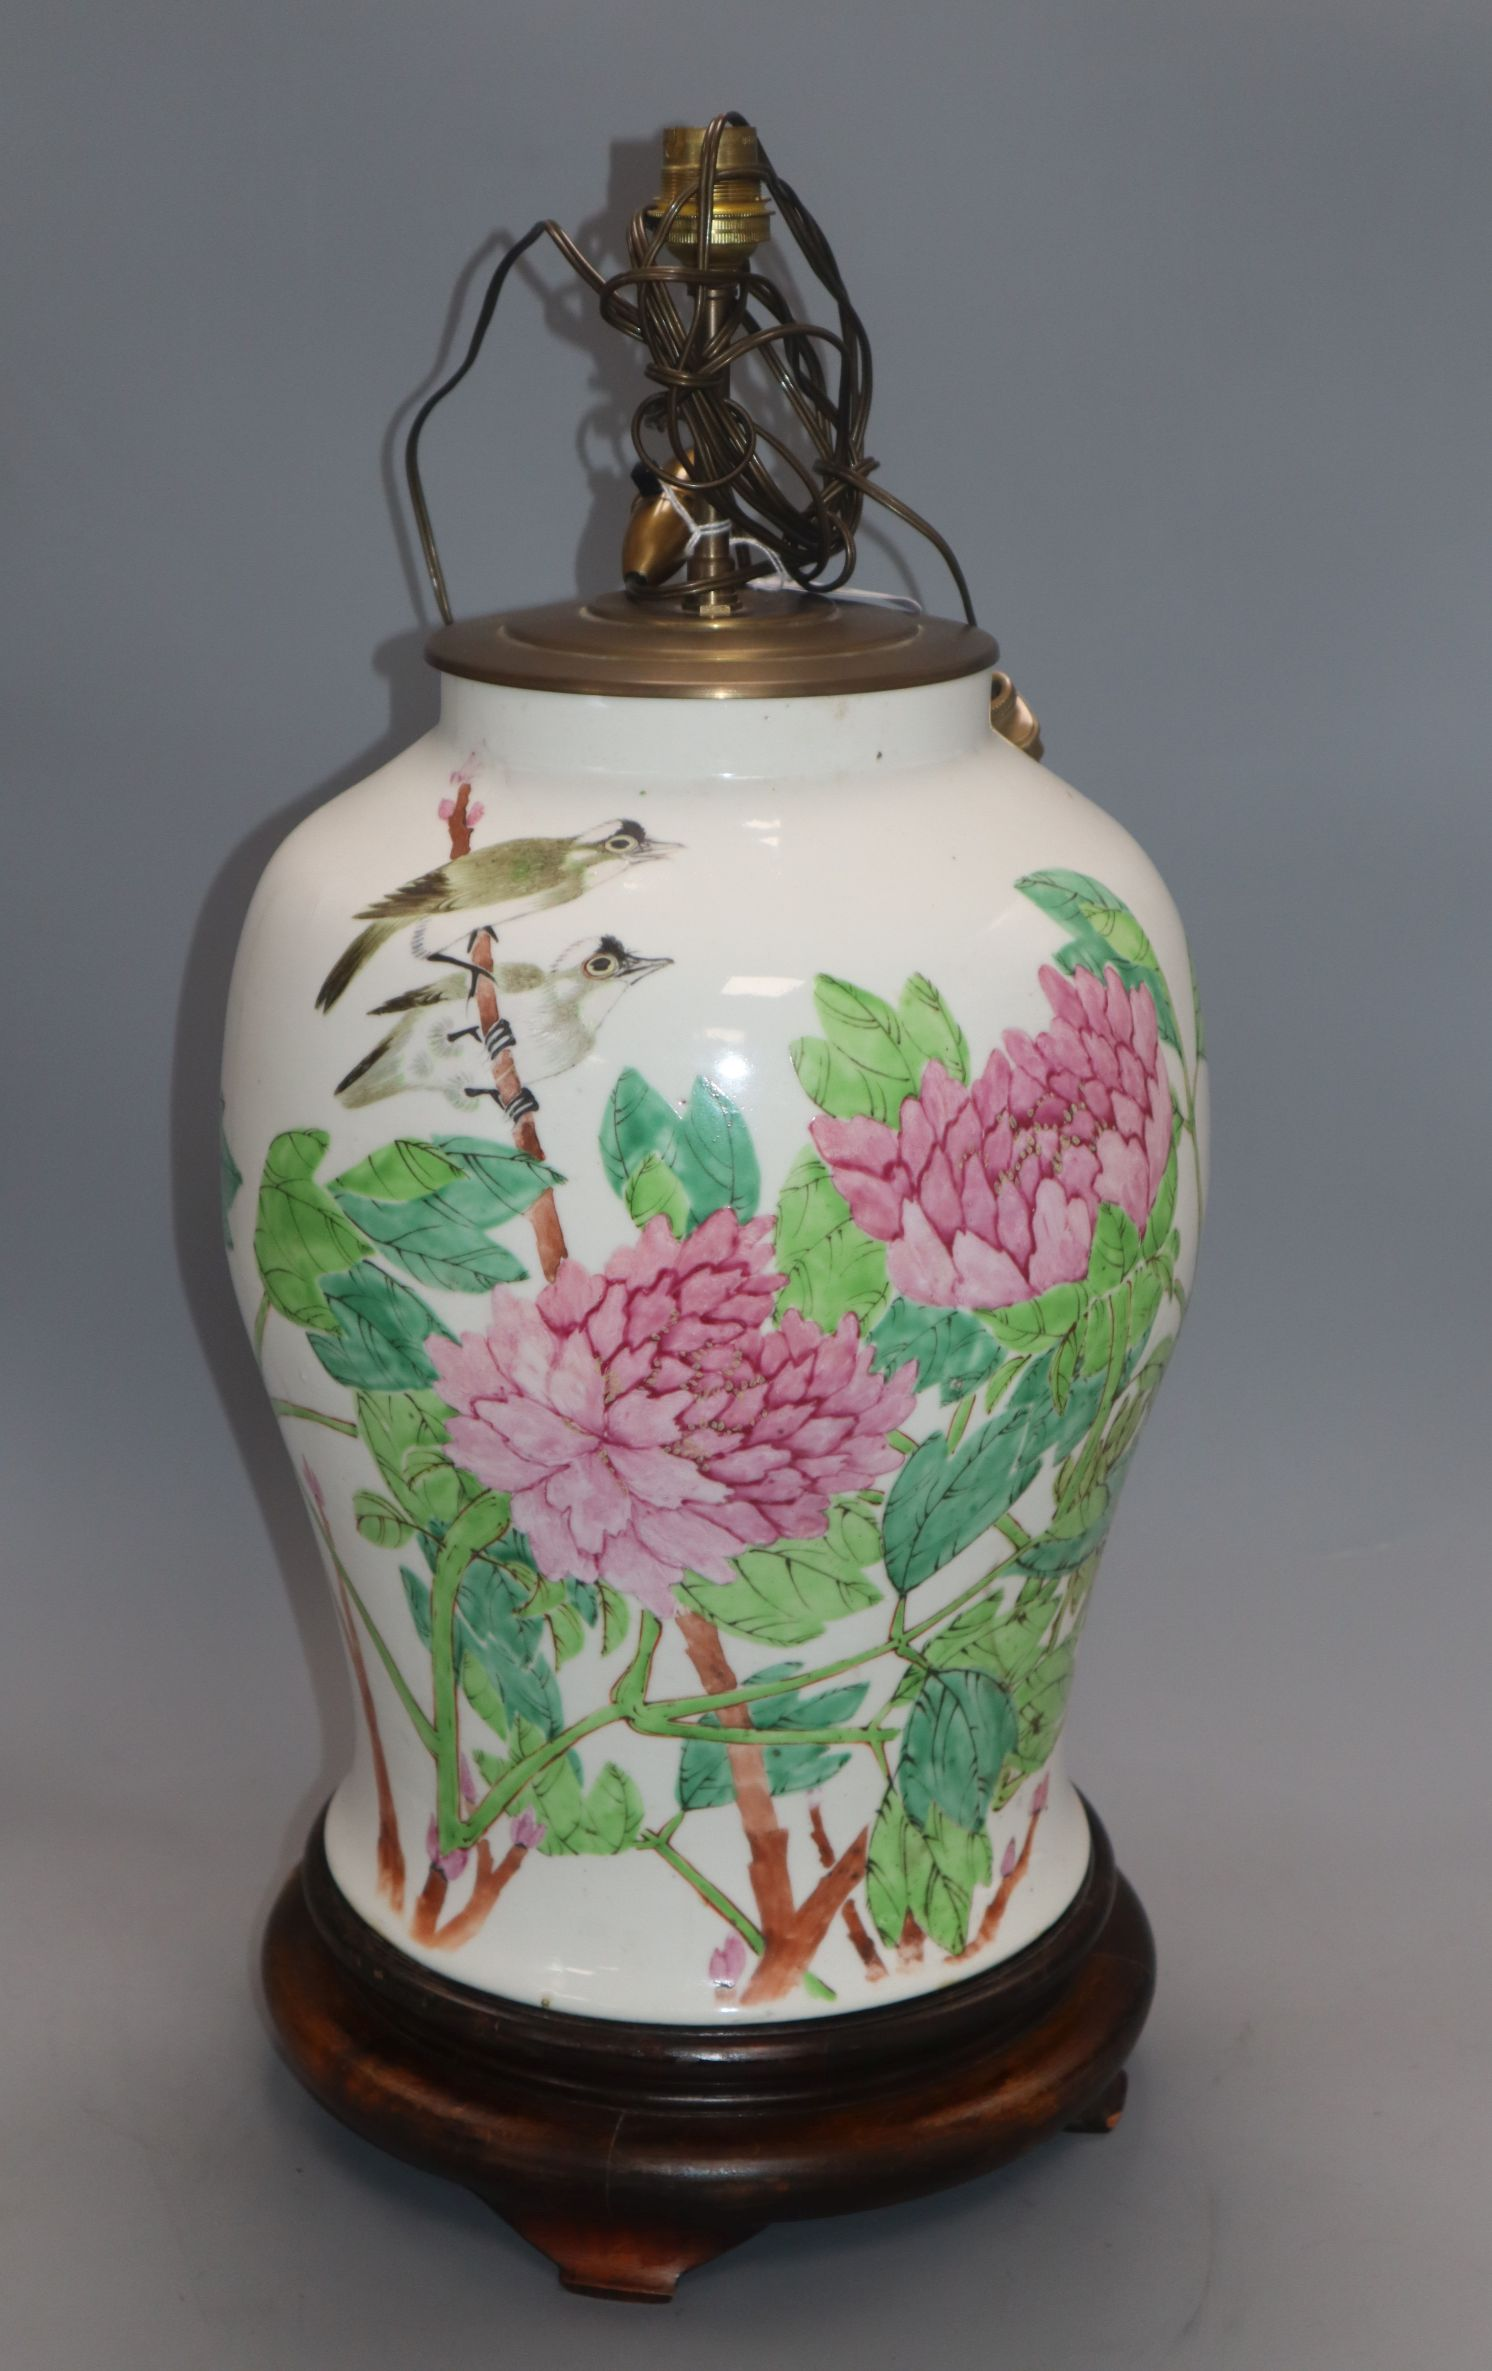 Lot 50 - A Republic period Chinese vase on stand, converted to a lamp height 43cm excluding fittings